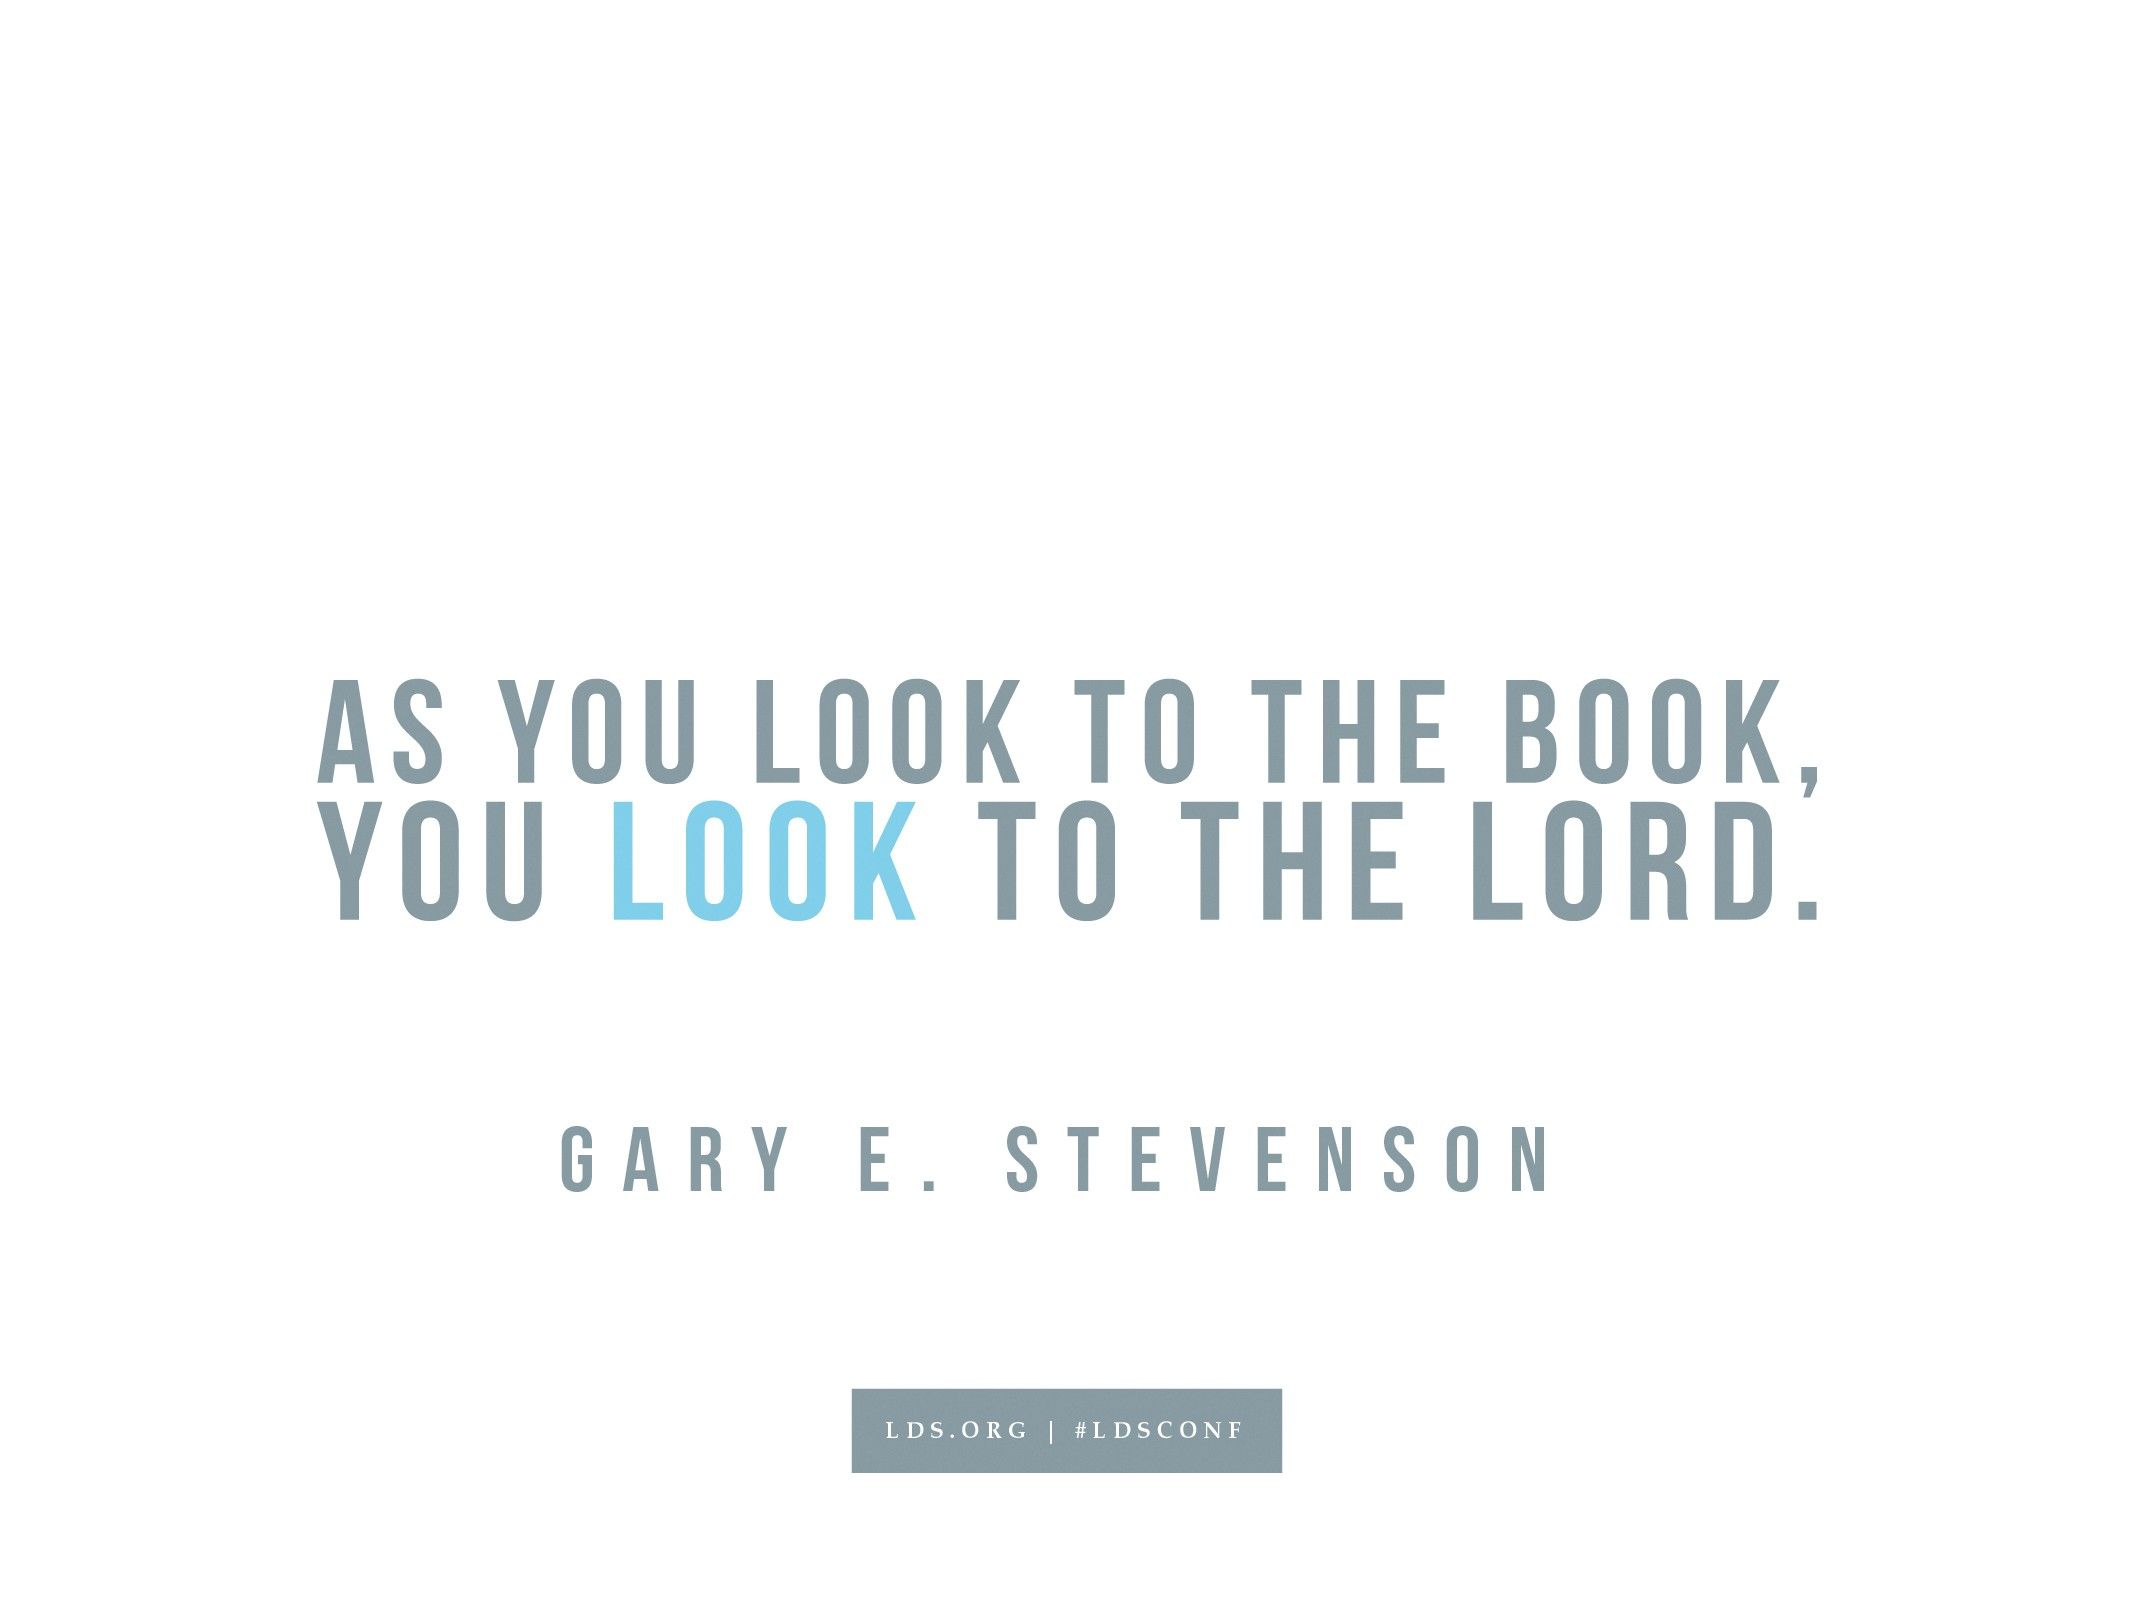 """""""As you look to the book, you look to the Lord.""""—Gary E. Stevenson, """"Look to the Book, Look to the Lord"""""""